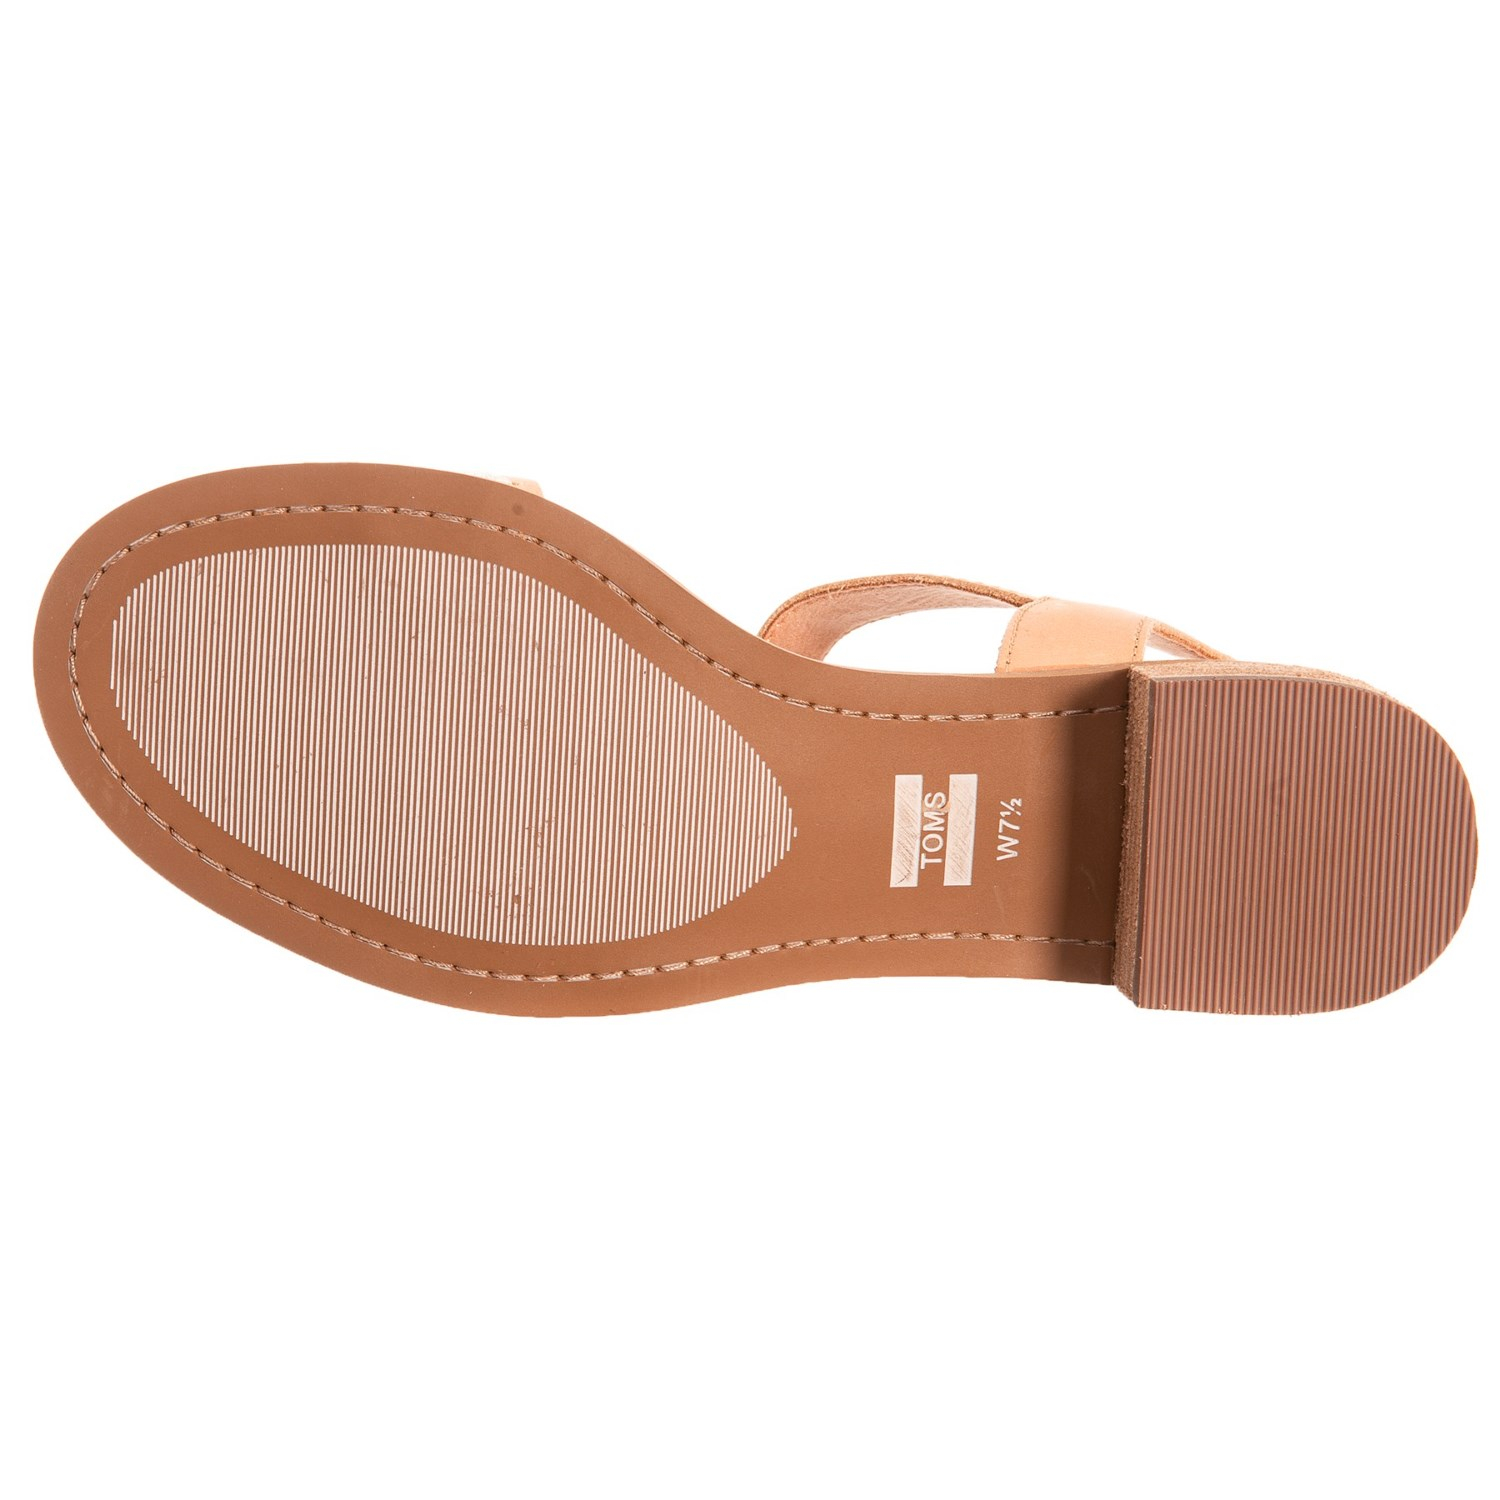 856b1ff24c2 TOMS Camillia Sandals - Leather (For Women)